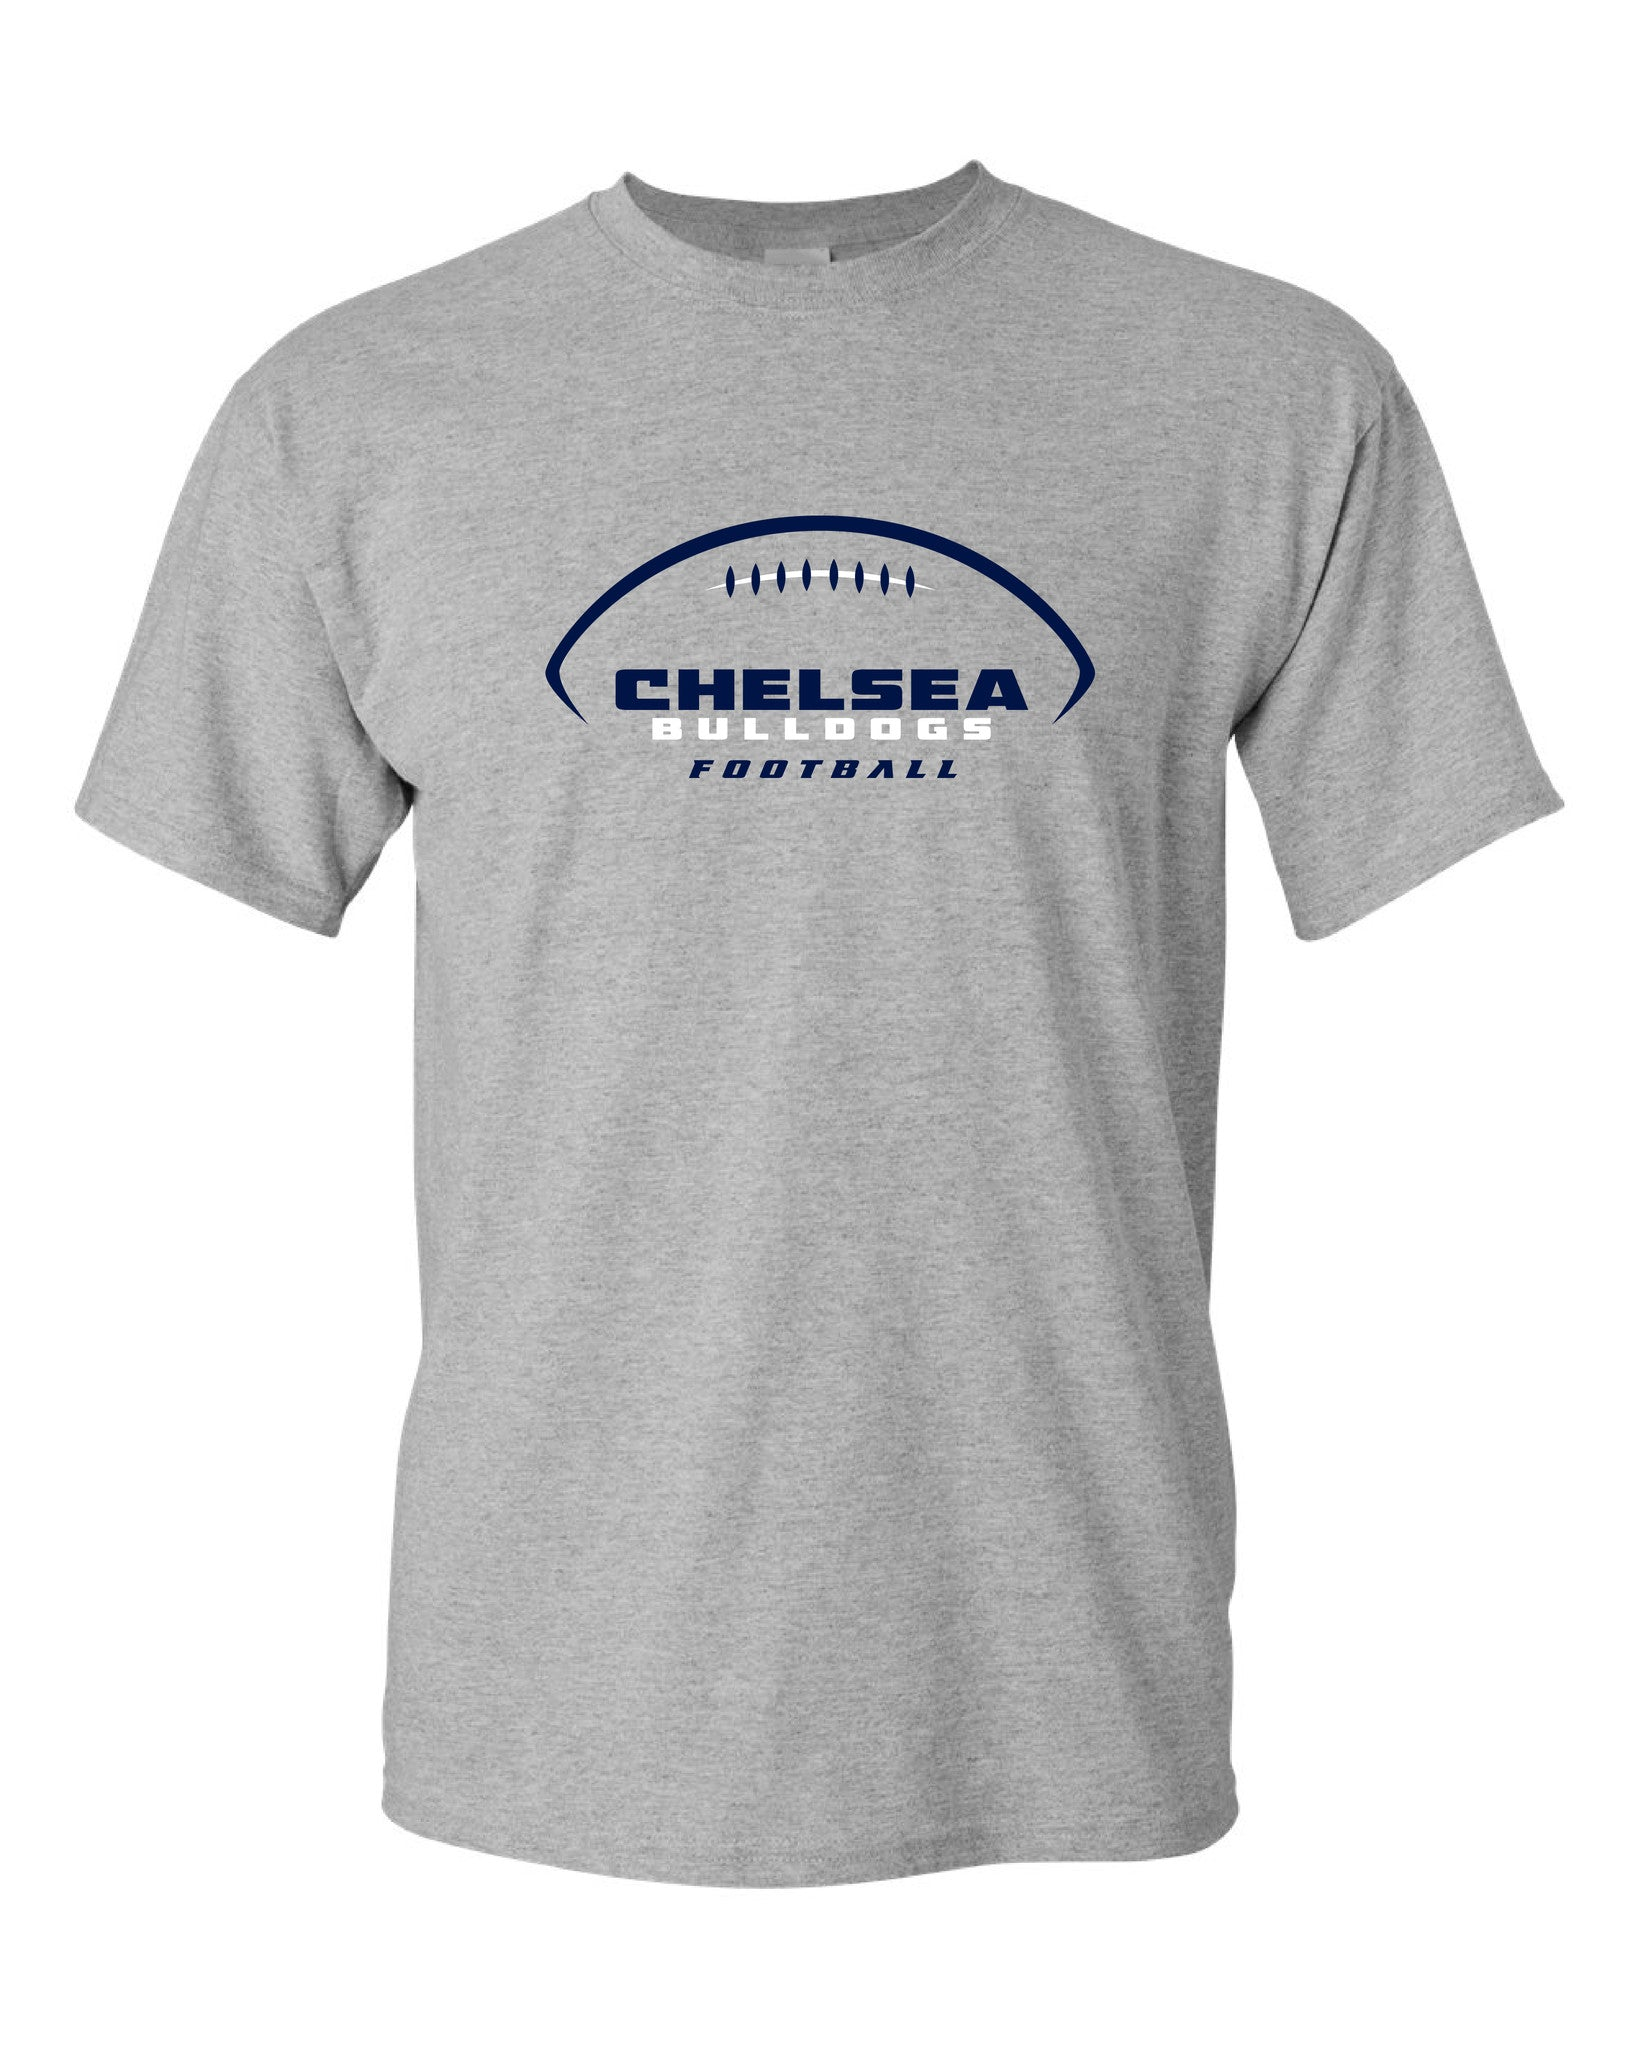 Adult Chelsea Football T-Shirt - D009